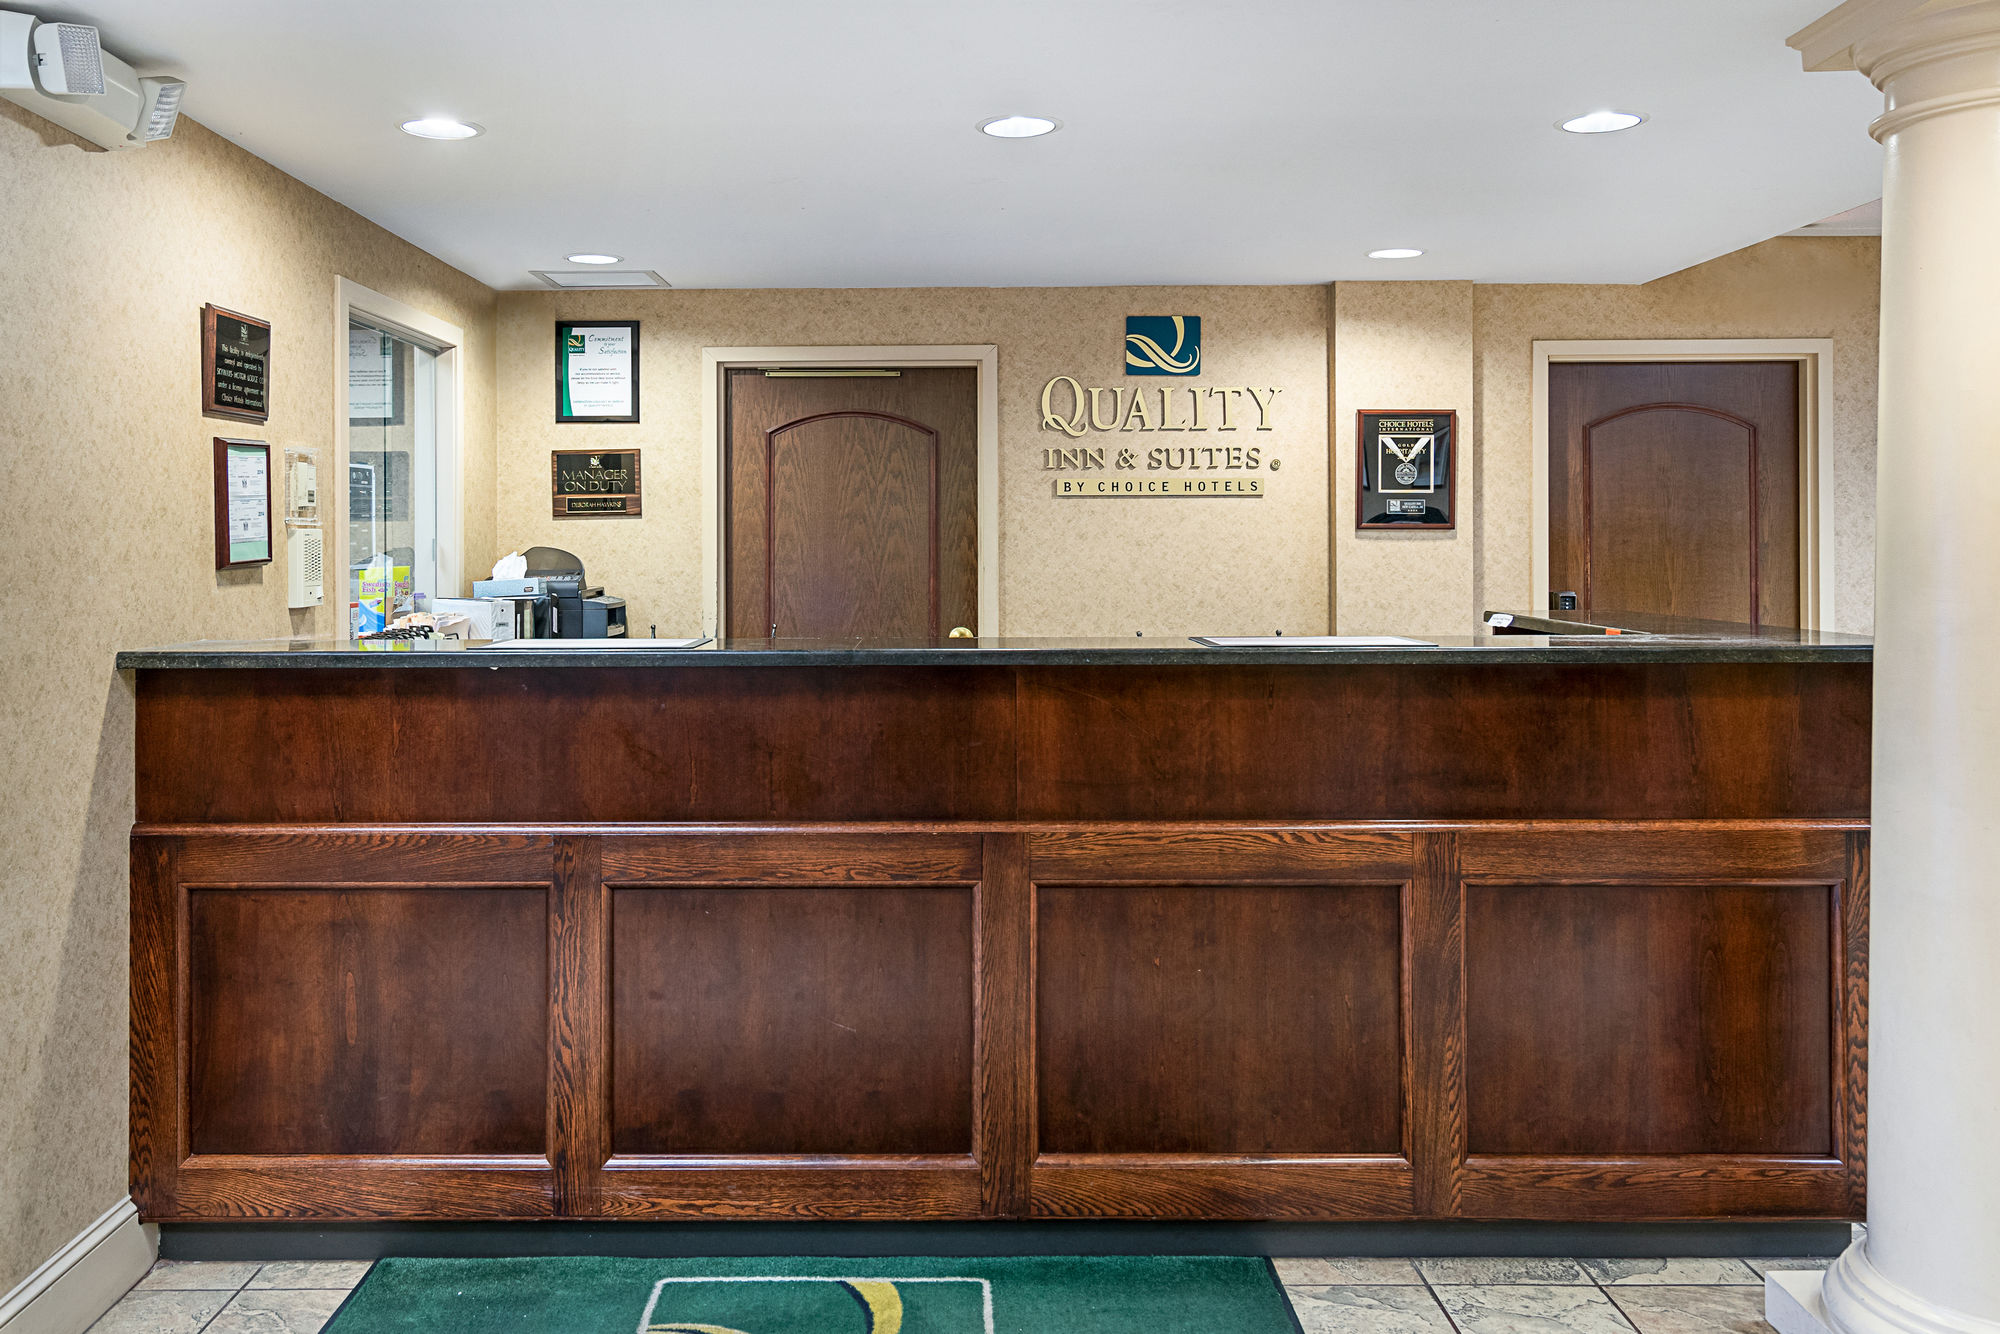 Quality Inn And Suites Skyways in New Castle, DE